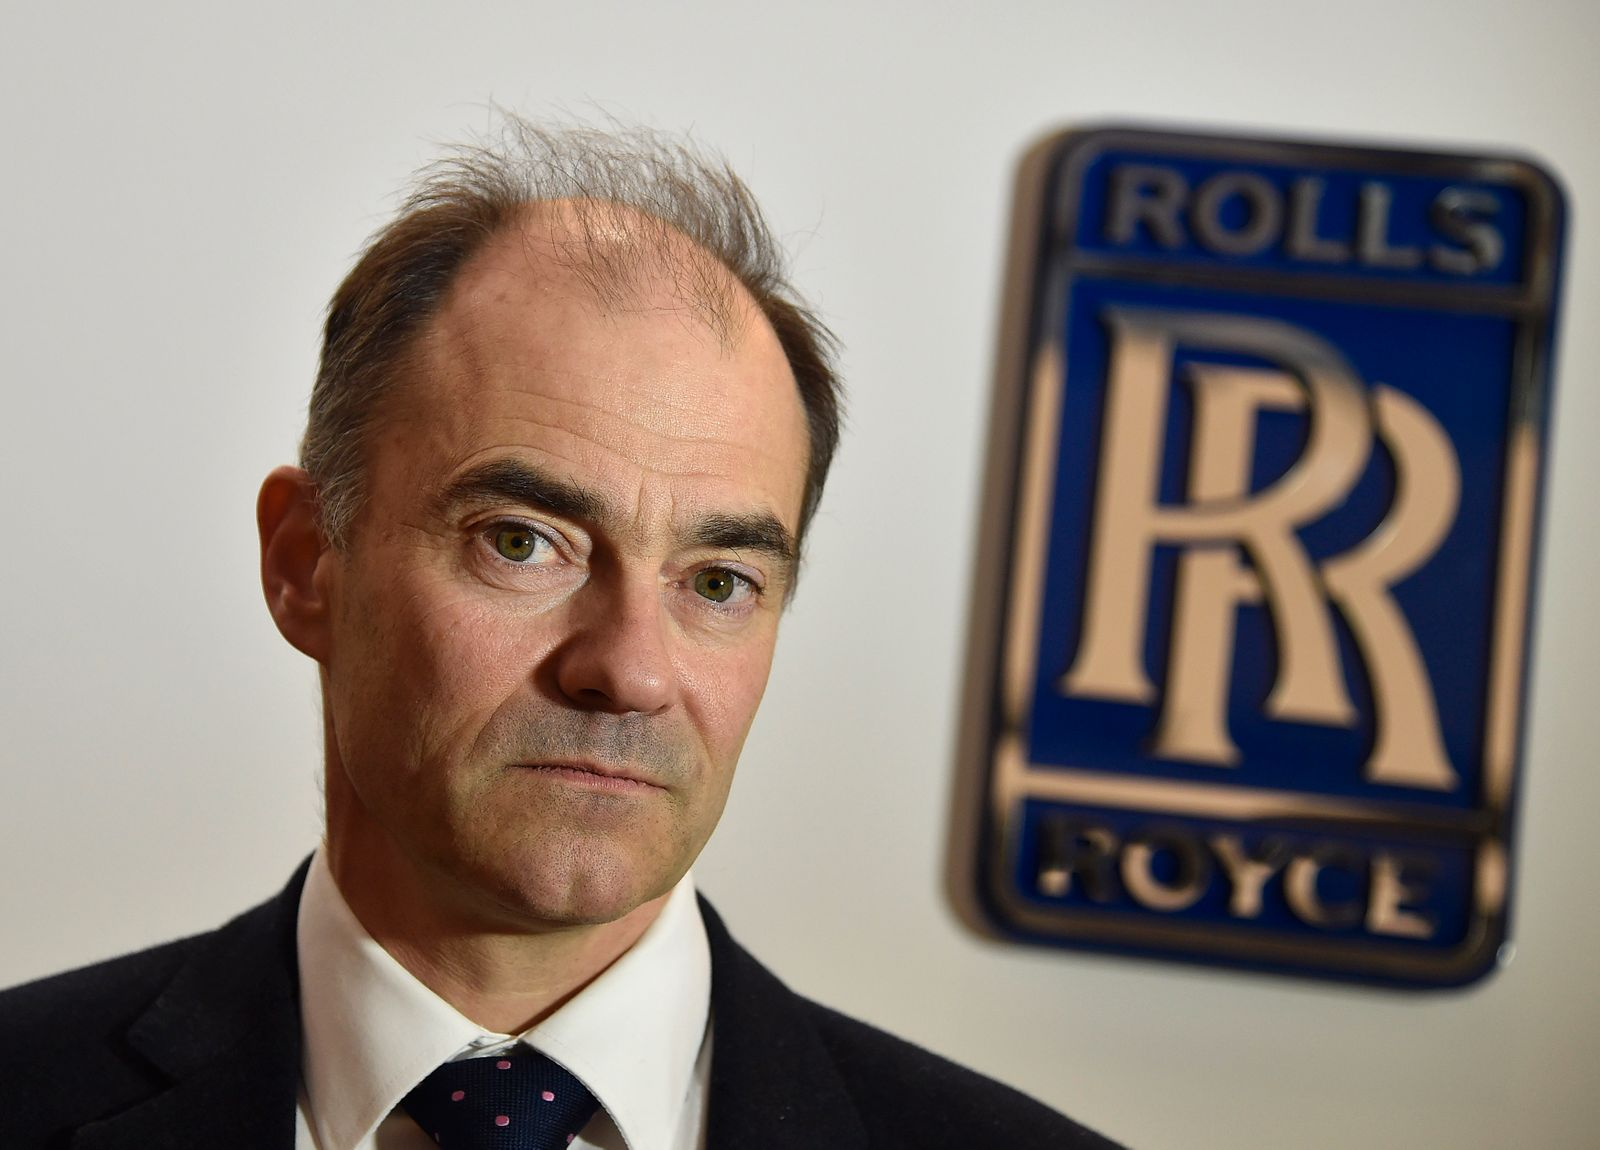 Warren East, CEO of Rolls-Royce